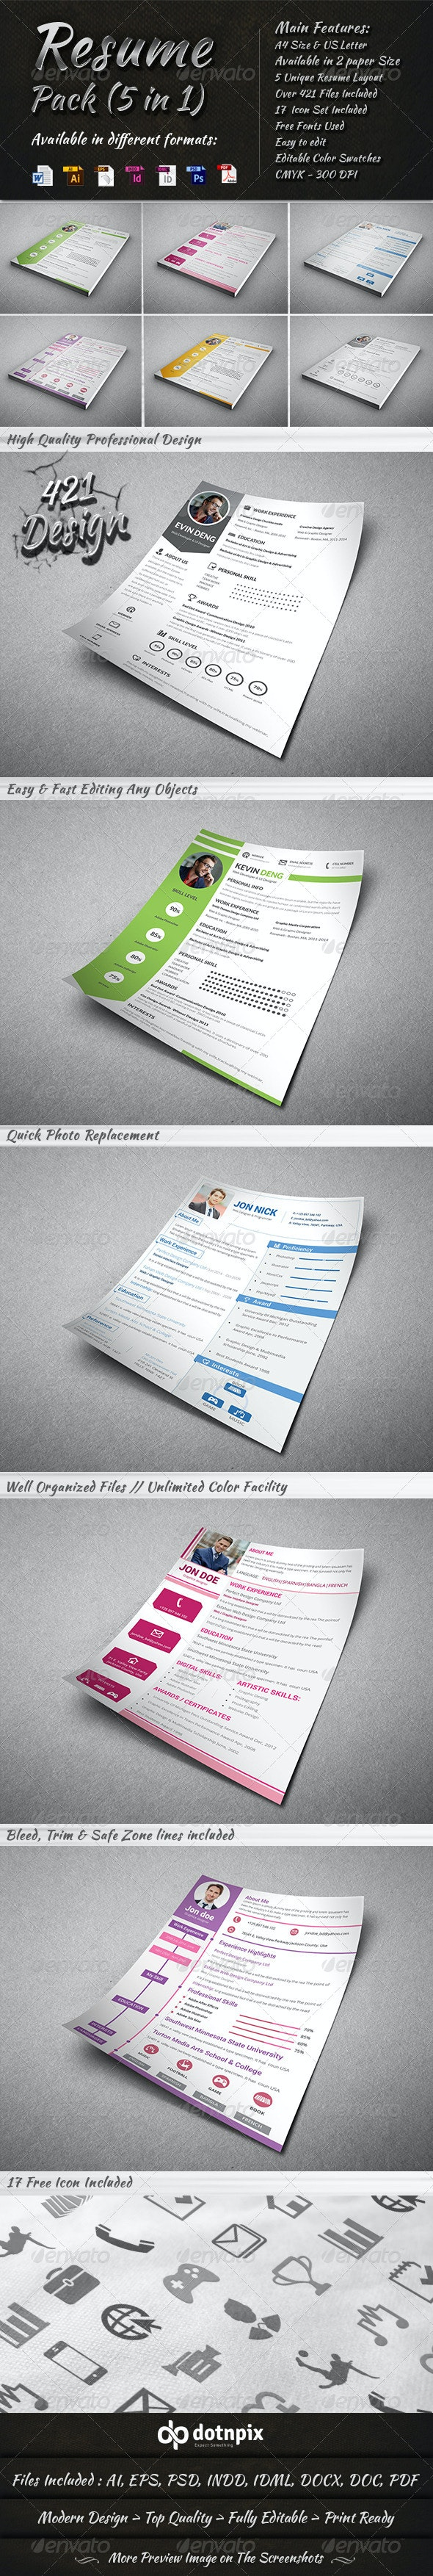 Resume Pack (5 in 1) - Resumes Stationery